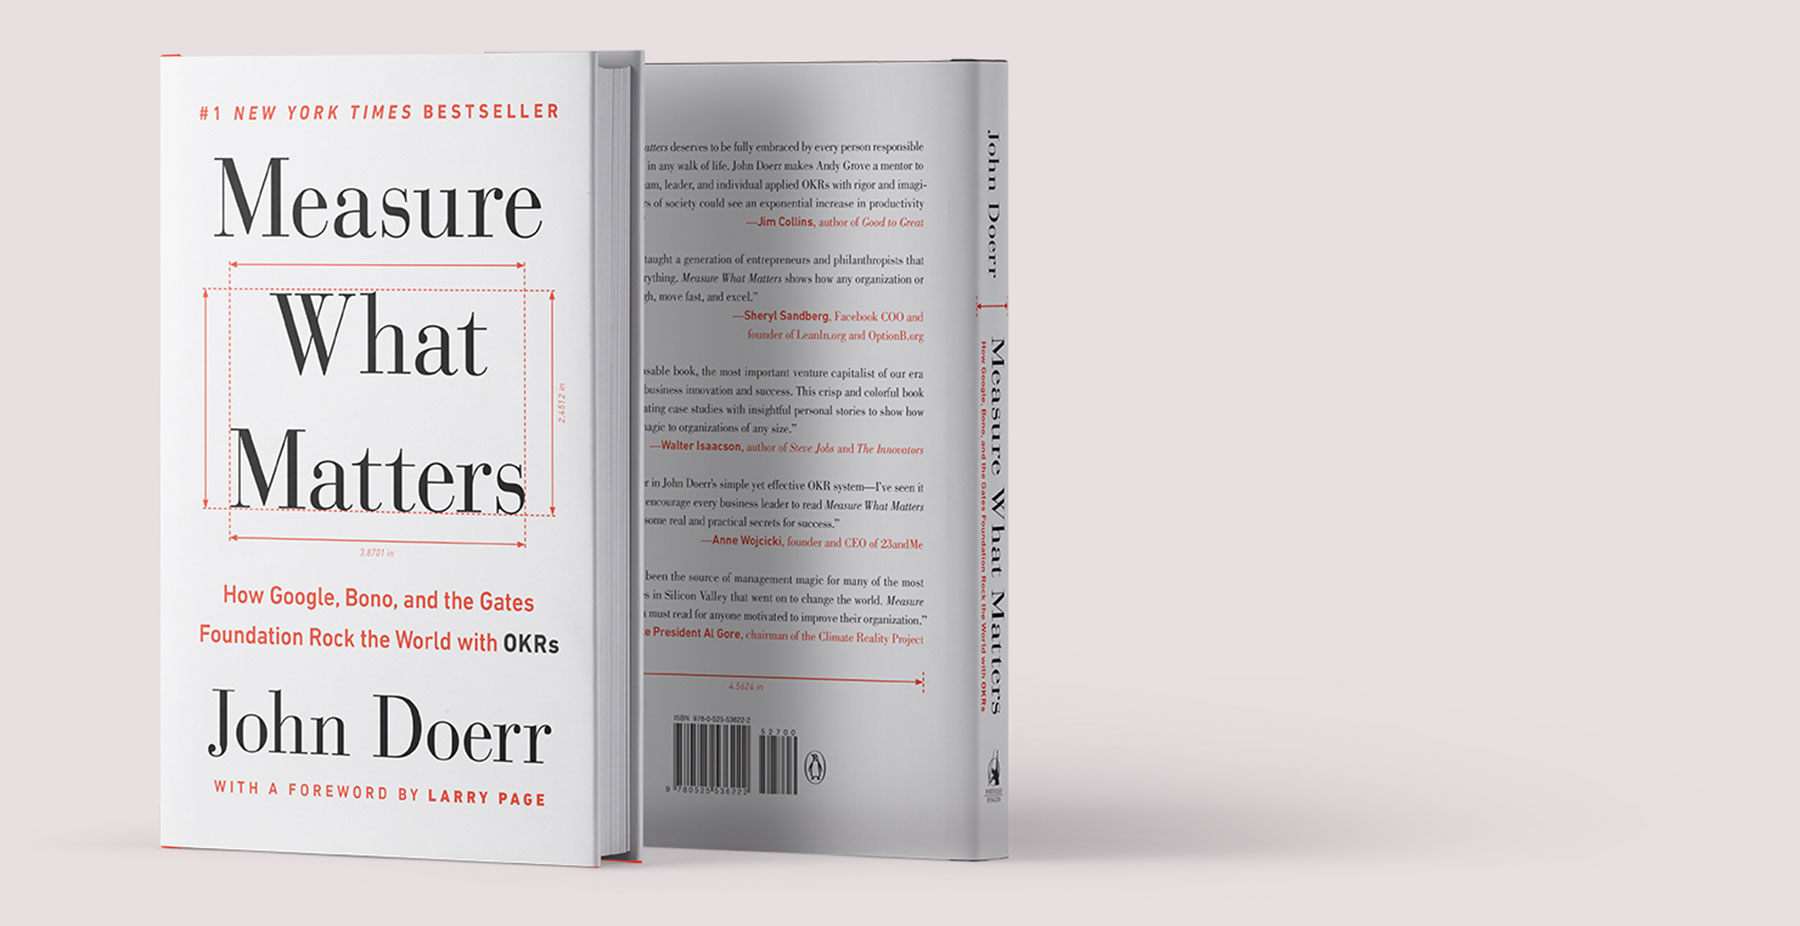 The Book Measure What Matters